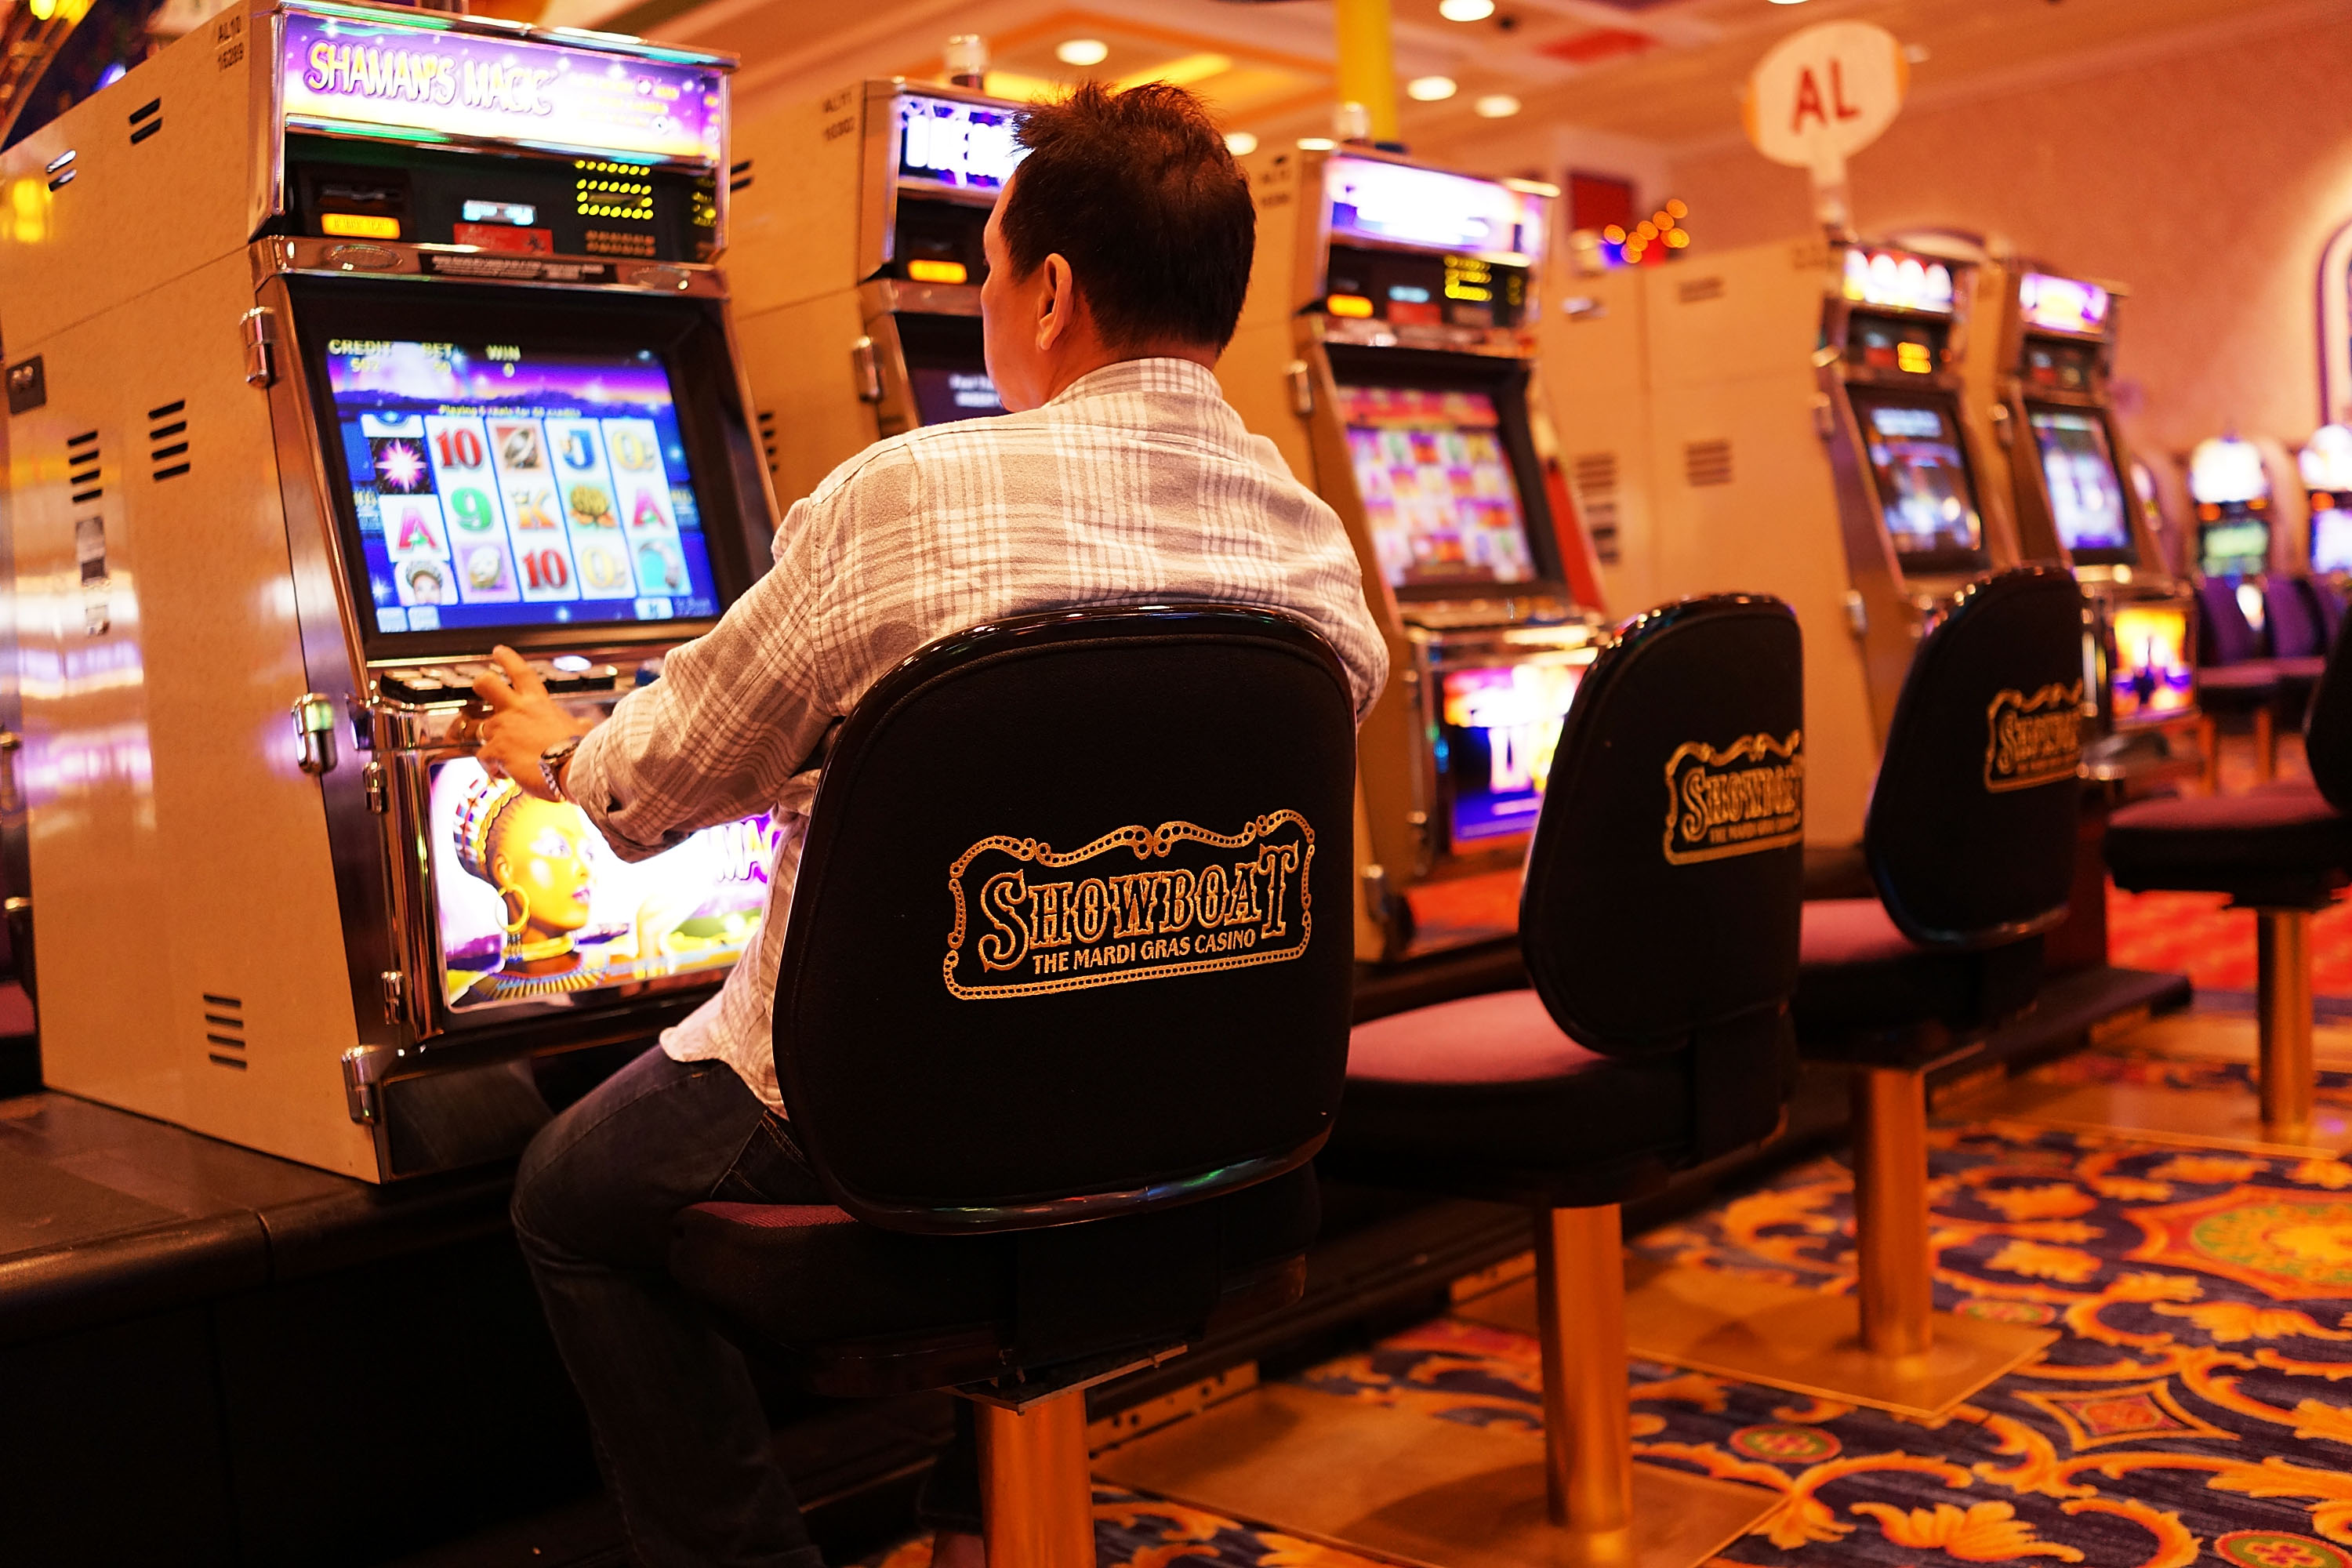 A man gambles at the Showboat casino, which is scheduled to close, in Atlantic City, N.J., on July 29, 2014